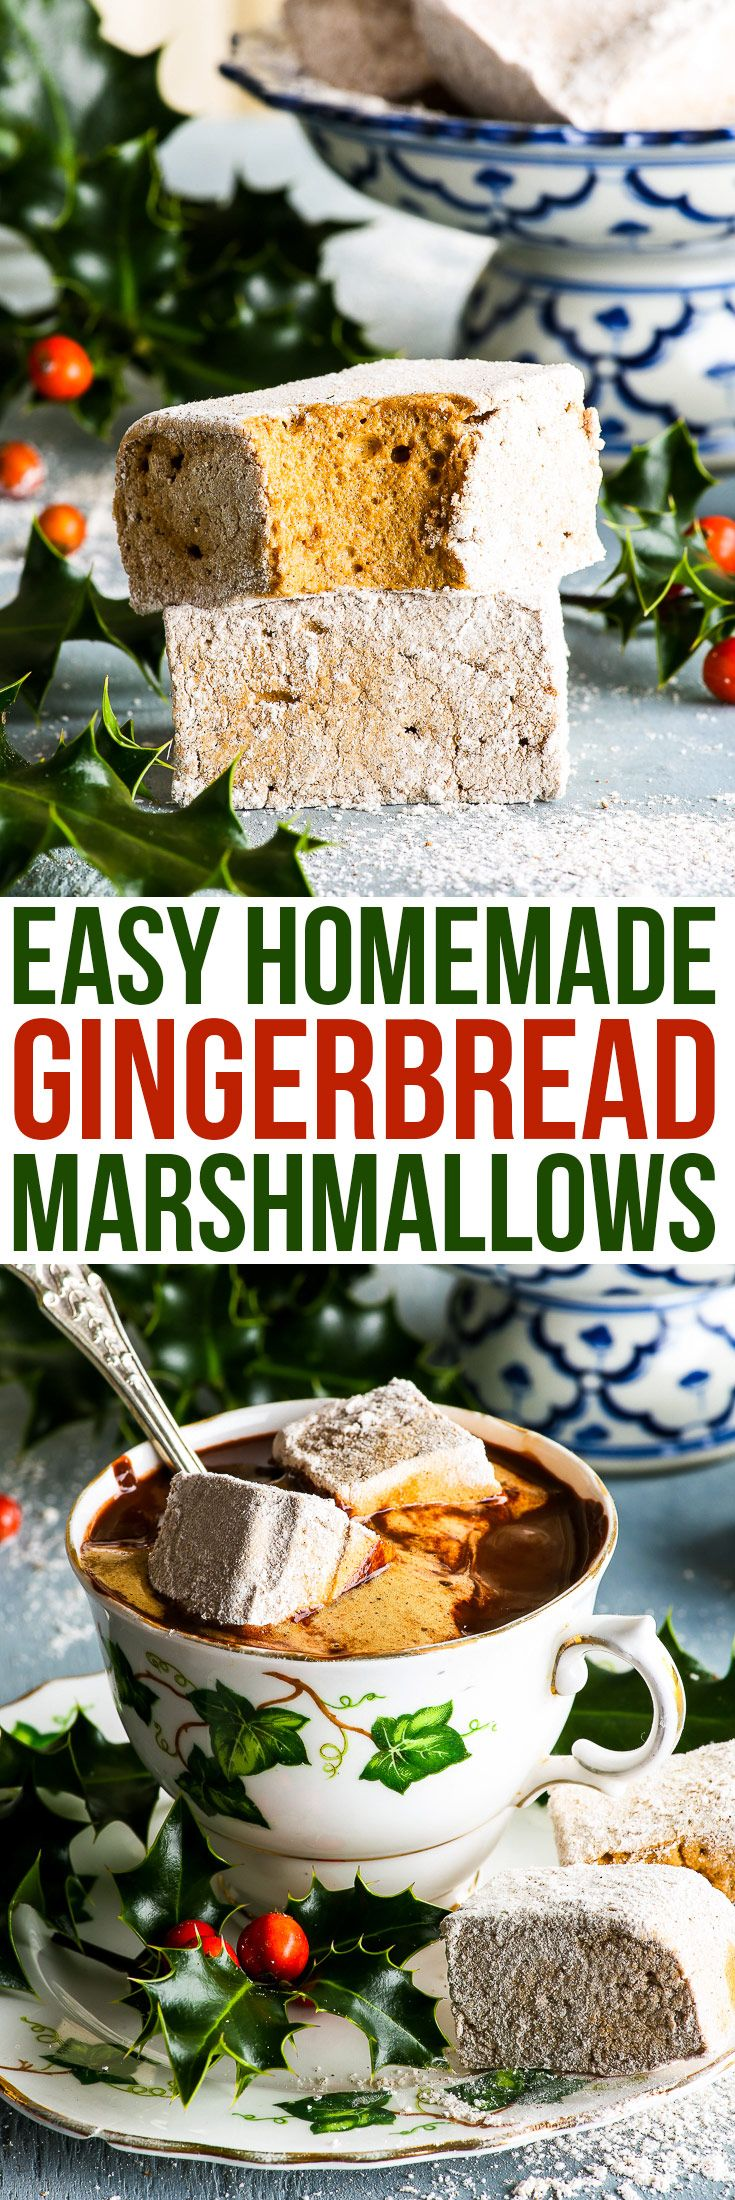 Easy Homemade Gingerbread Marshmallows {gluten, dairy, egg, nut & soy free} - These homemade gingerbread marshmallows are a revelation. Easy to make, they truly (truly) taste just like gingerbread – there's the molasses, the cinnamon, ginger, nutmeg and cloves. So… the taste is there, and the texture – pure marshmallowy goodness! Perfect with some hot chocolate, they also make a tasty DIY Christmas gift. #diygift #diychristmasgift #christmas #marshmallow #sweet